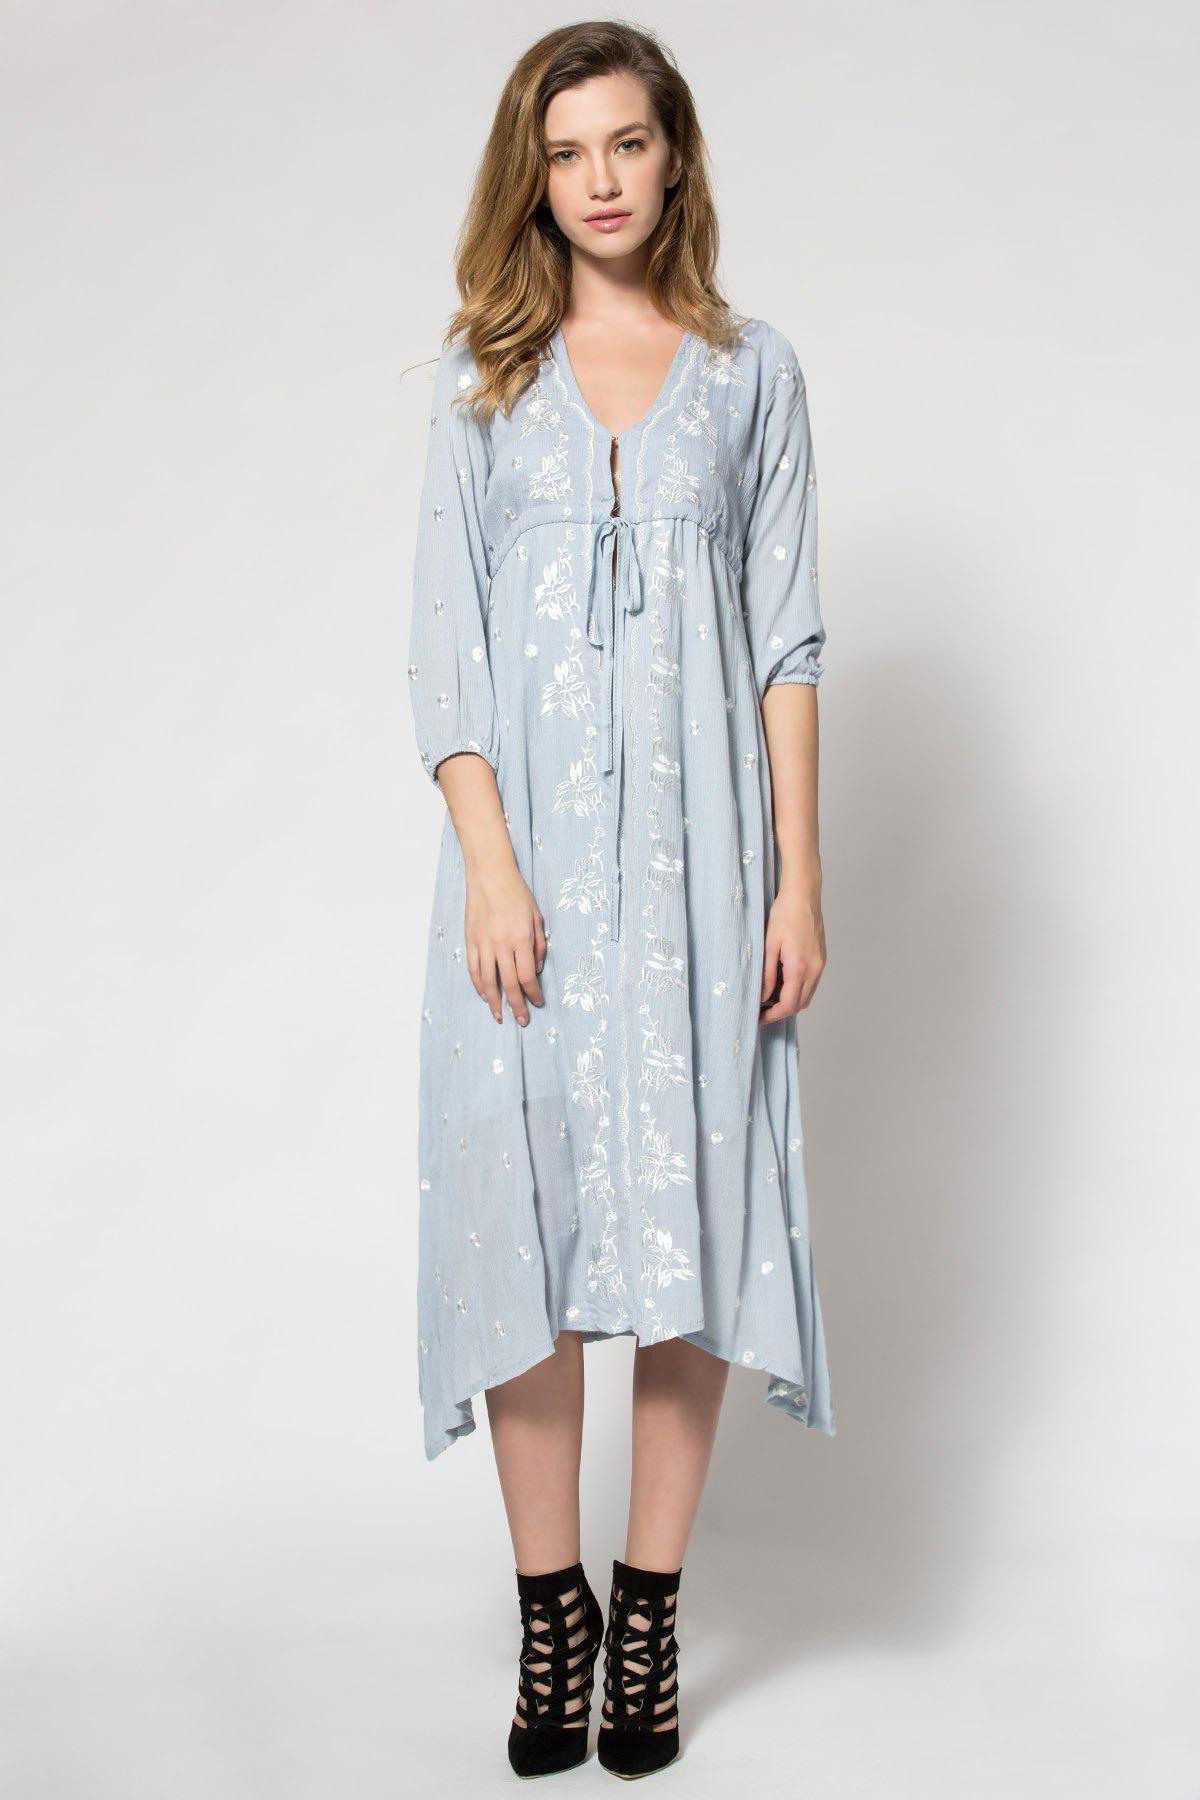 Ladies Fashionable V-Neck Tiny Floral Embroidery Tie-Up 3/4 Sleeve Dress For Women